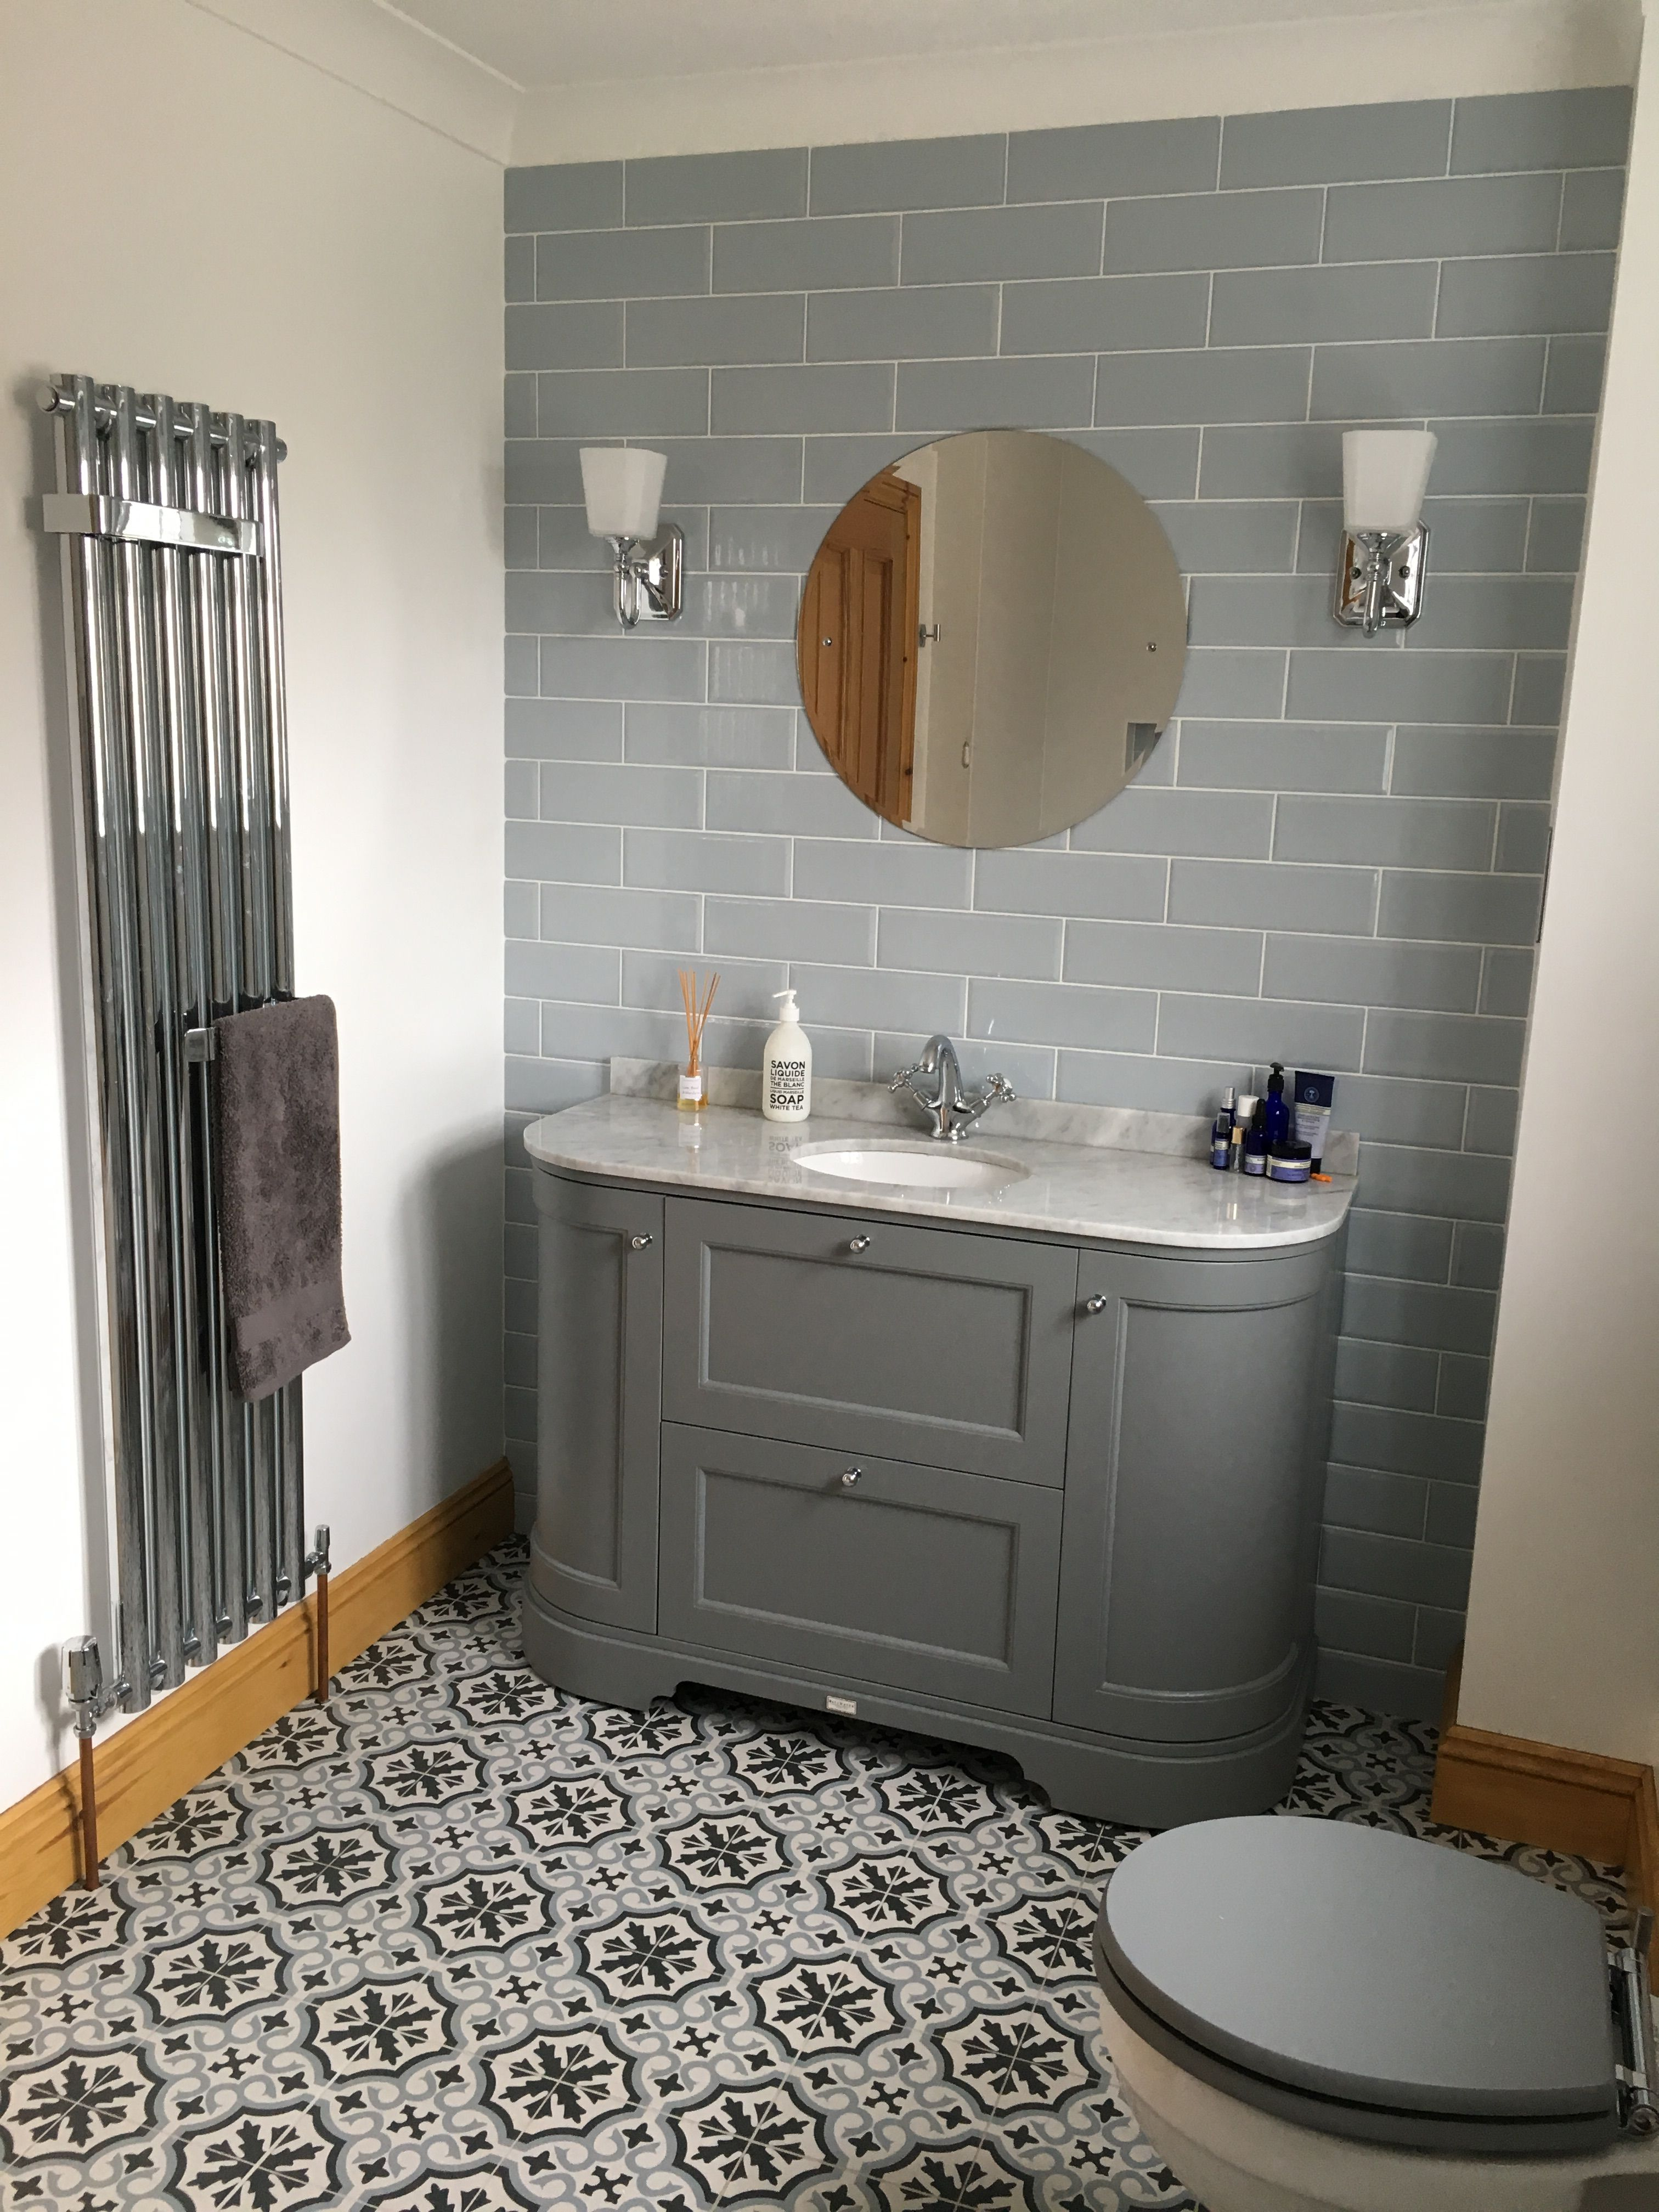 Burlington Curved Vanity Unit Grey With Grey Marble Tiles From Topps Tiles Bathroom Vanity Trends Topps Tiles Bathroom Decor